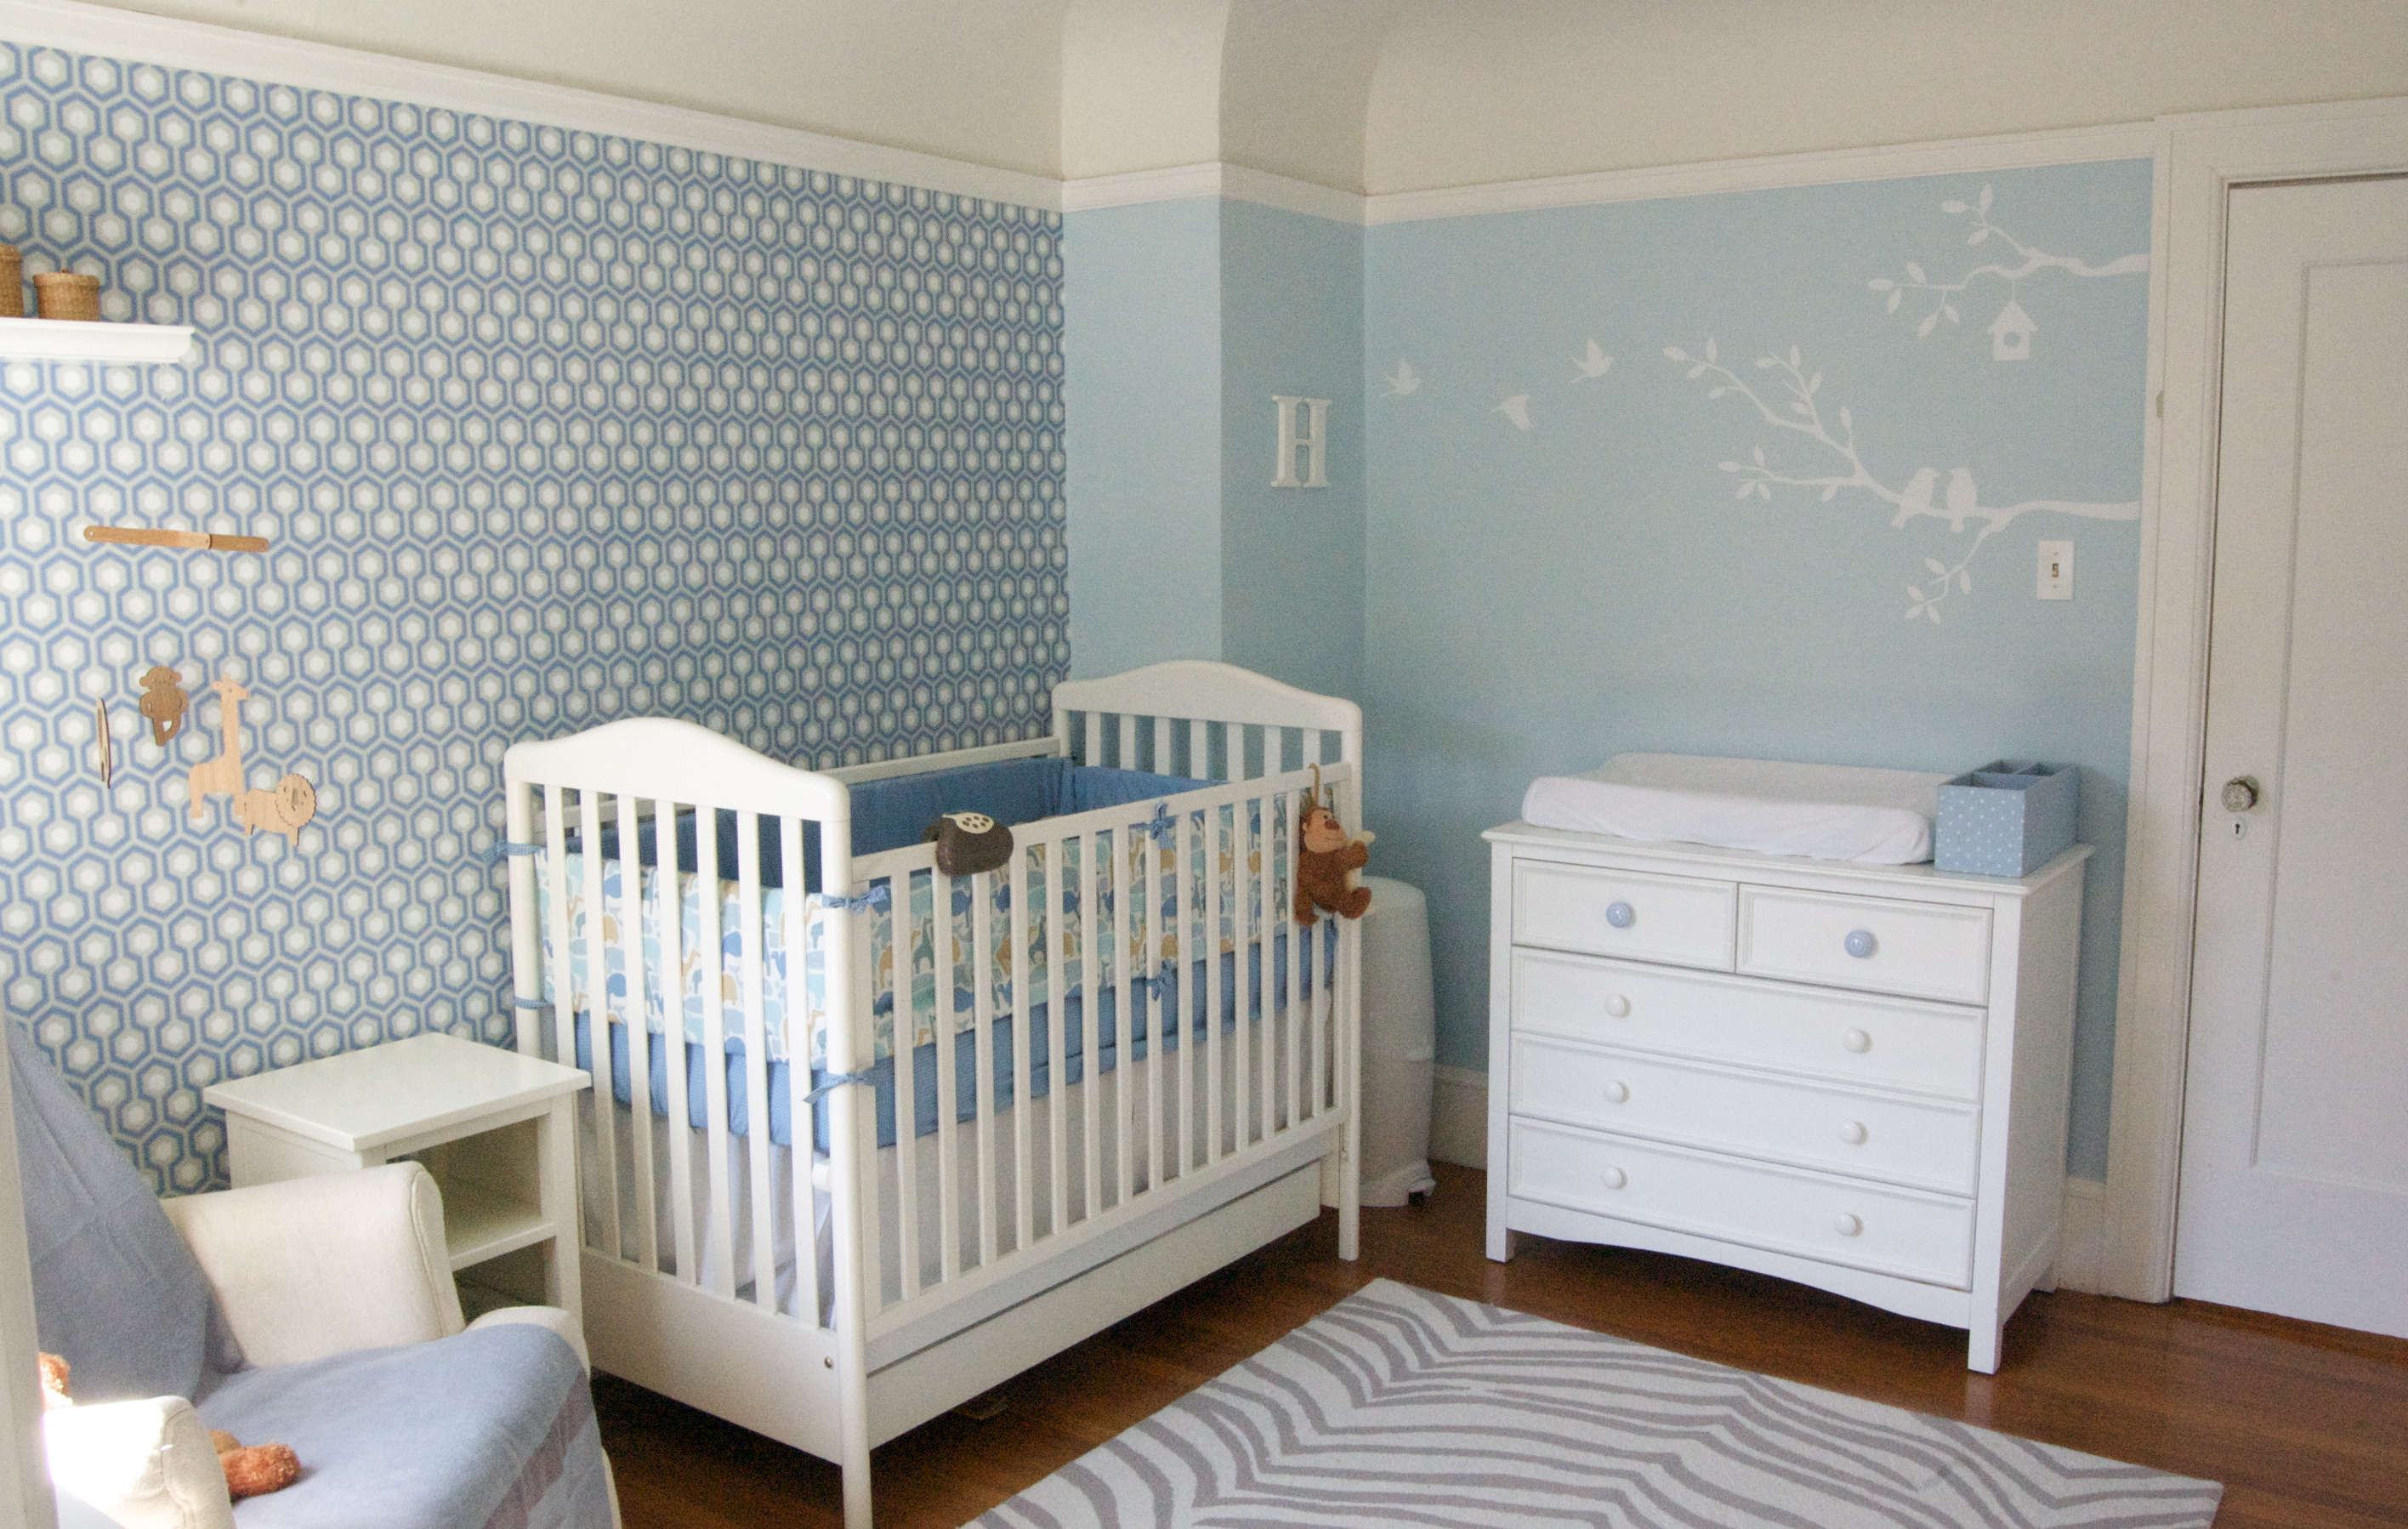 1000 images about baby room ideas on pinterest for Baby bedroom design